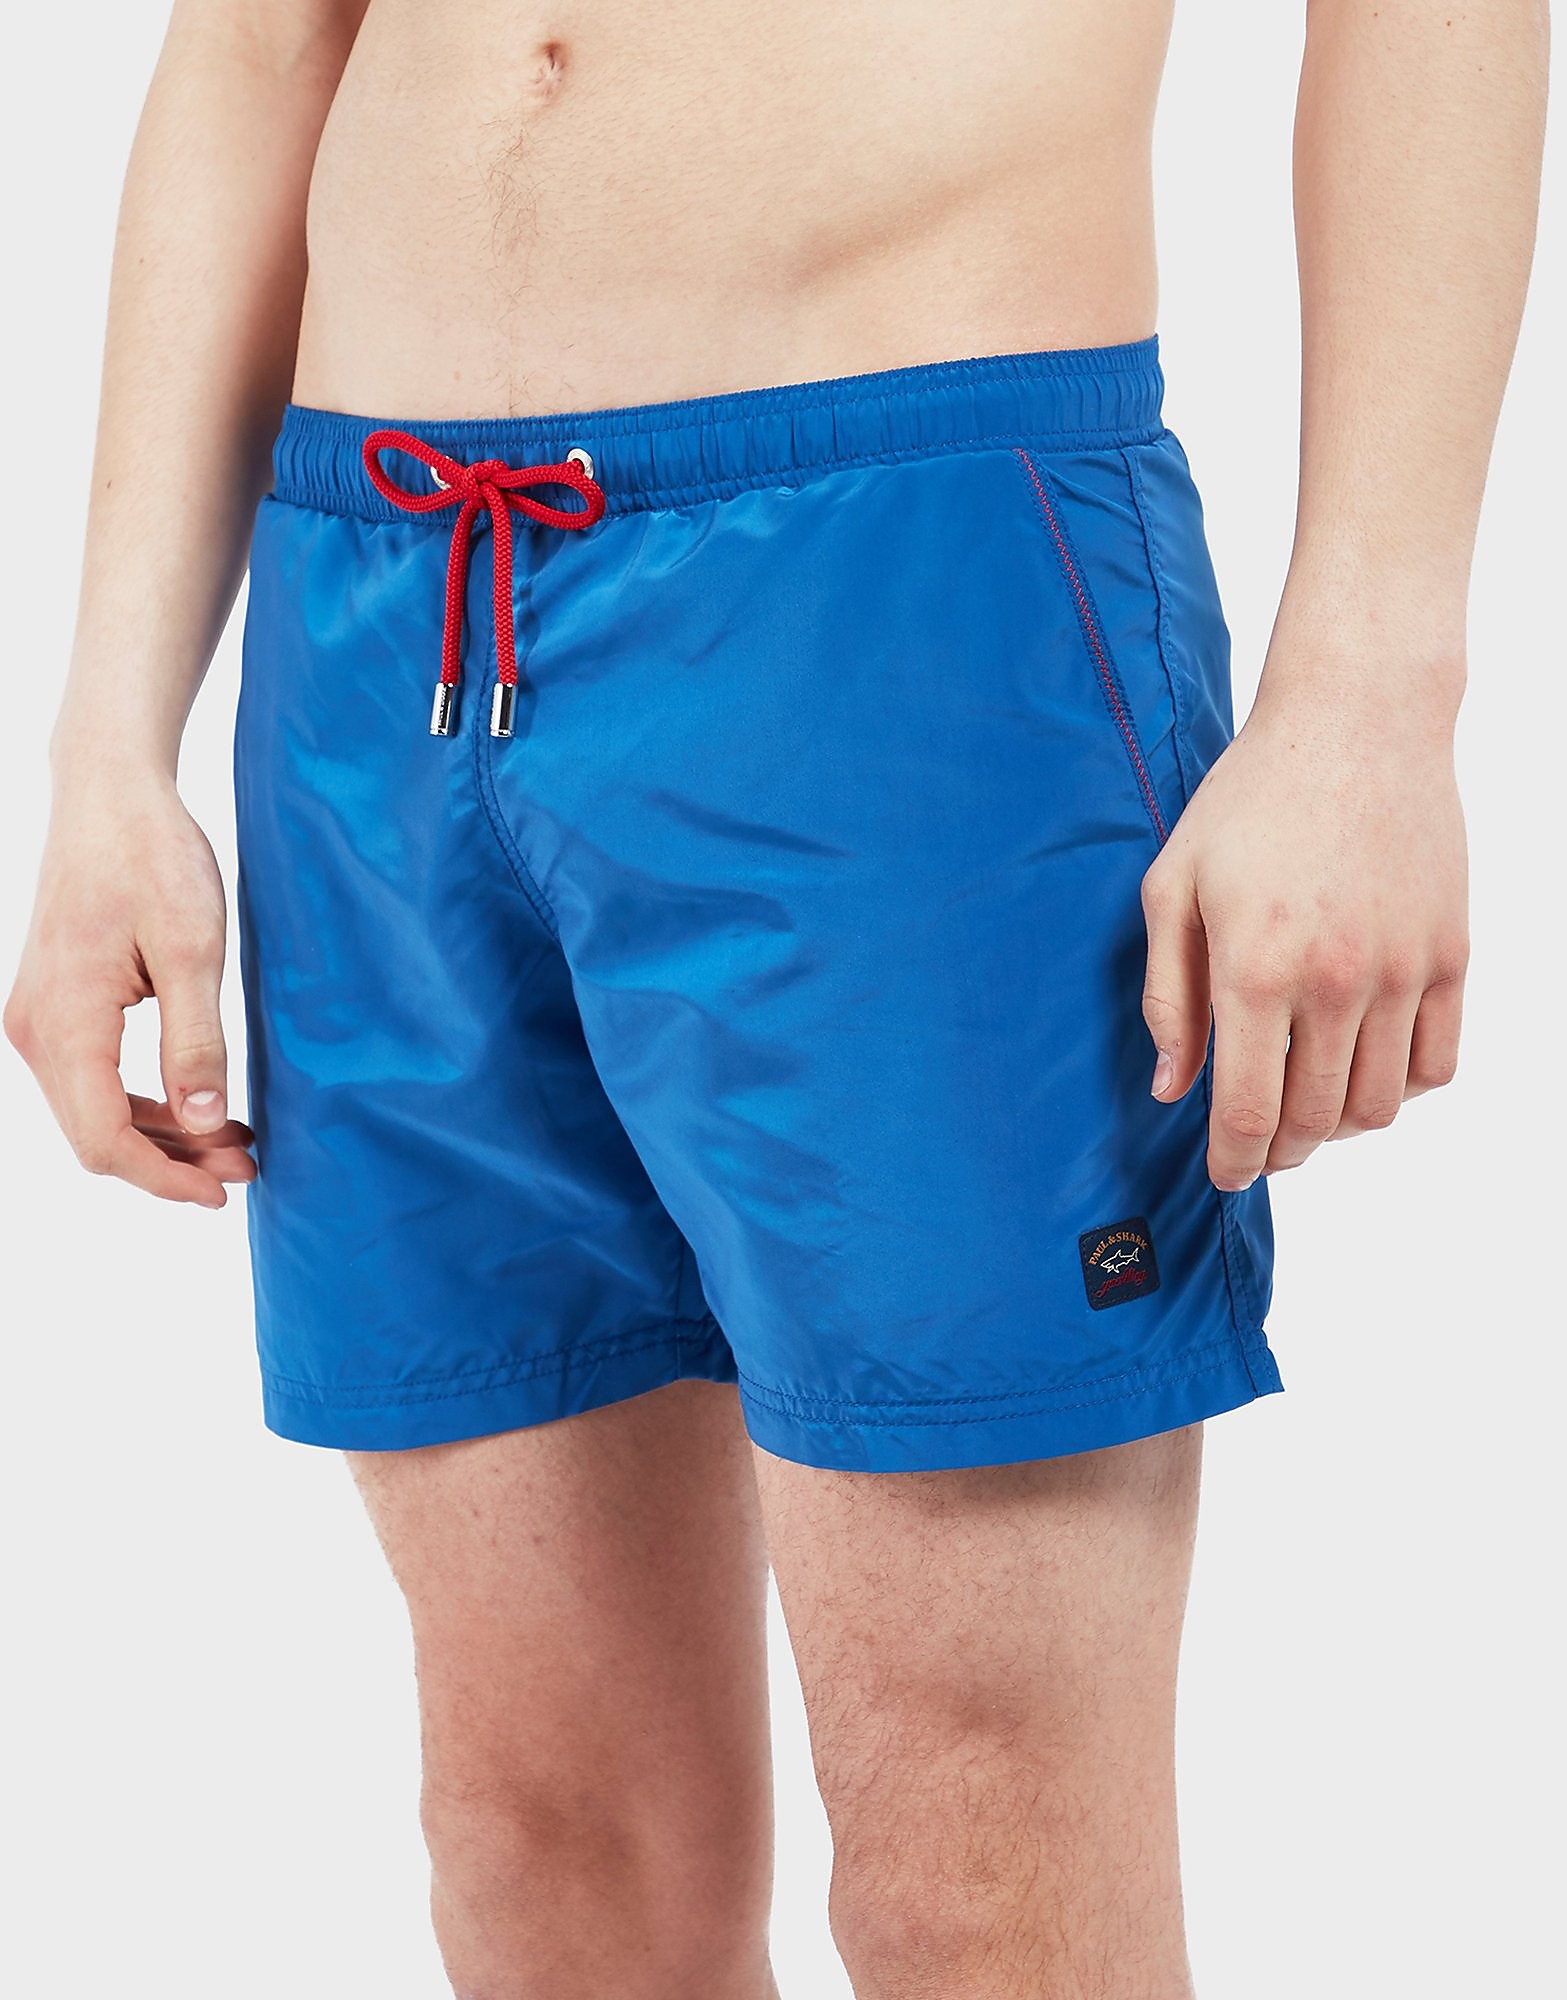 Paul and Shark Woven Swim Shorts